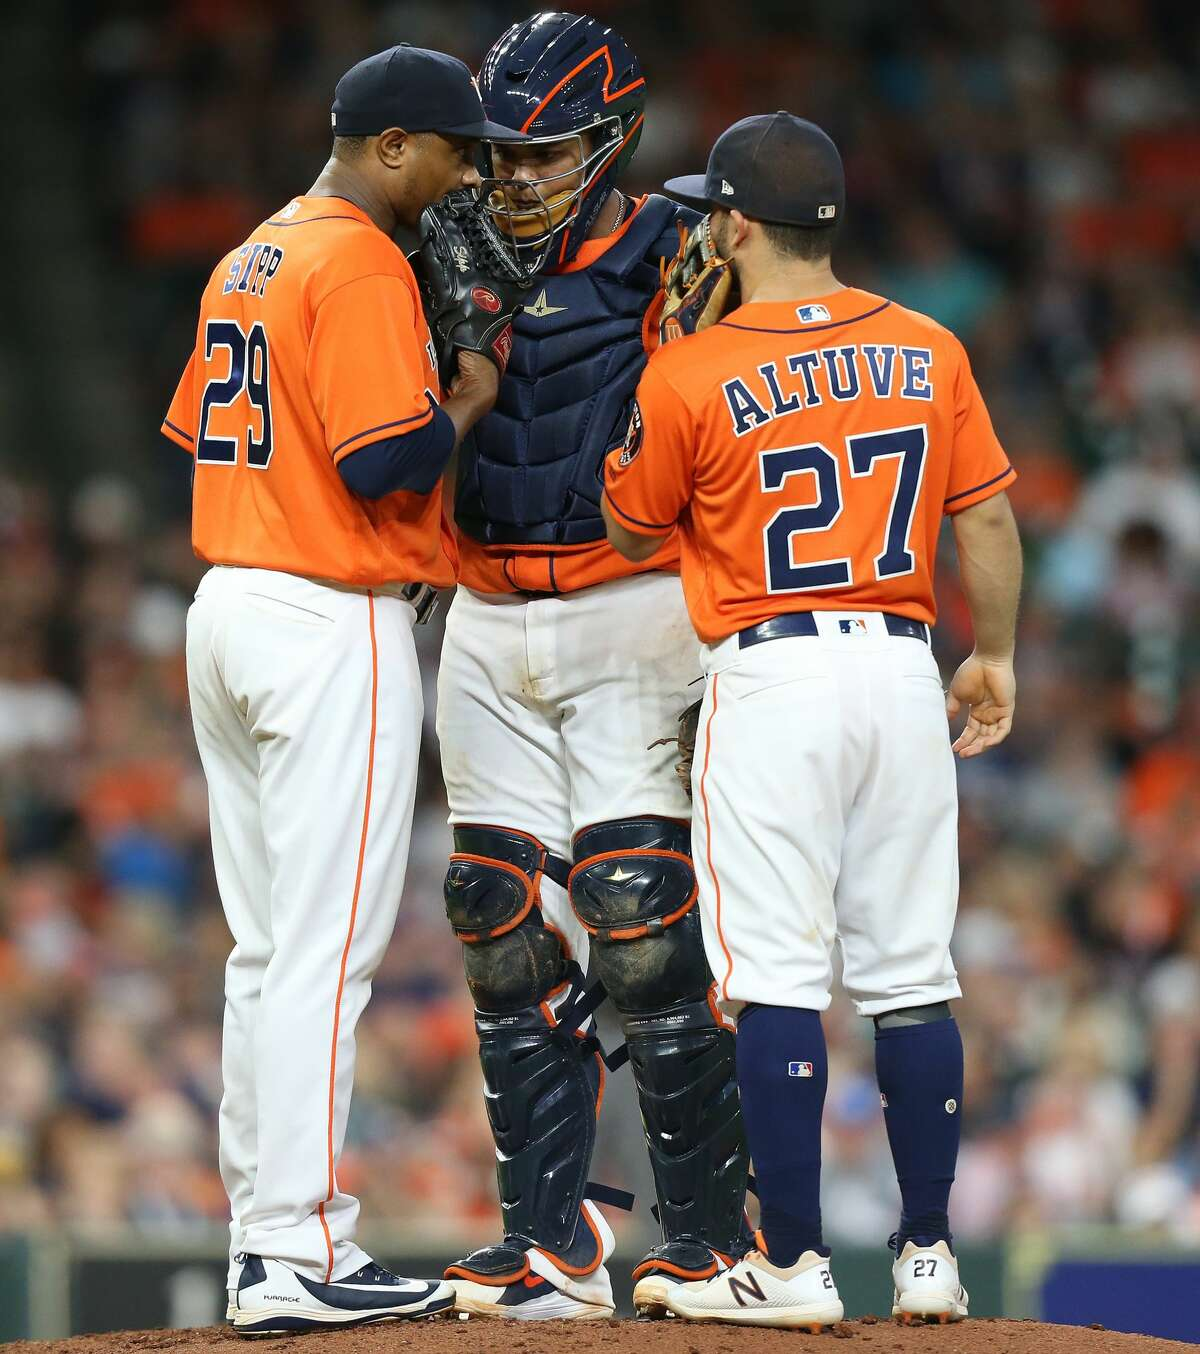 Houston Astros relief pitcher Tony Sipp (29) chats with catcher Martin Maldonado (15) and second baseman Jose Altuve (27) in the seventh inning against the Arizona Diamondbacks at Minute Maid Park on Friday, Sept. 14, 2018 in Houston.